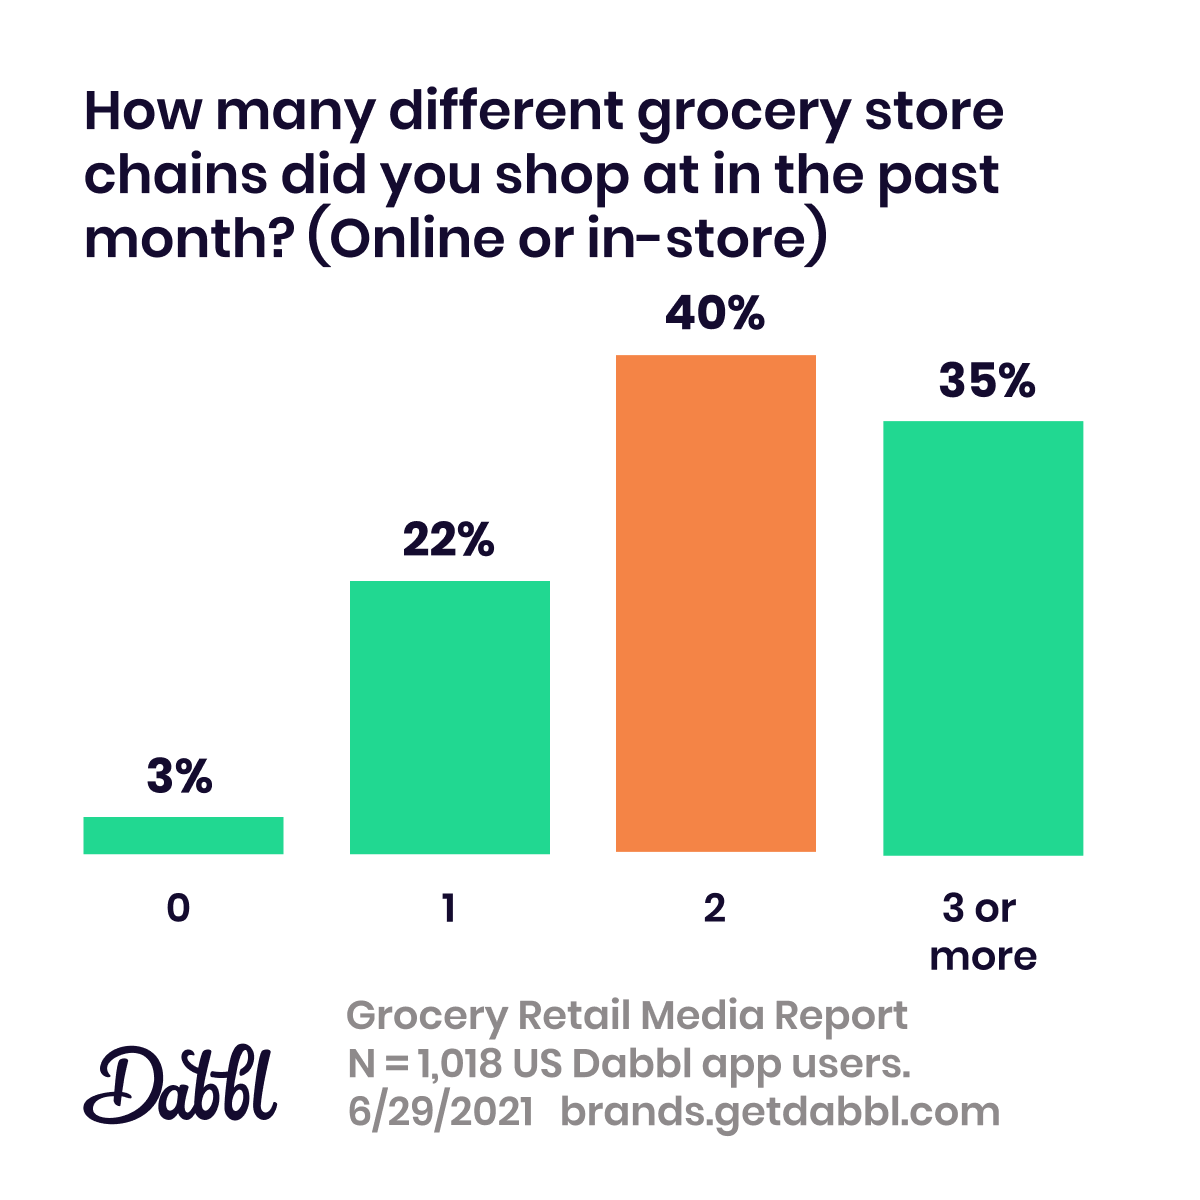 Dabbl Grocery Retail media Report: number of grocers frequented